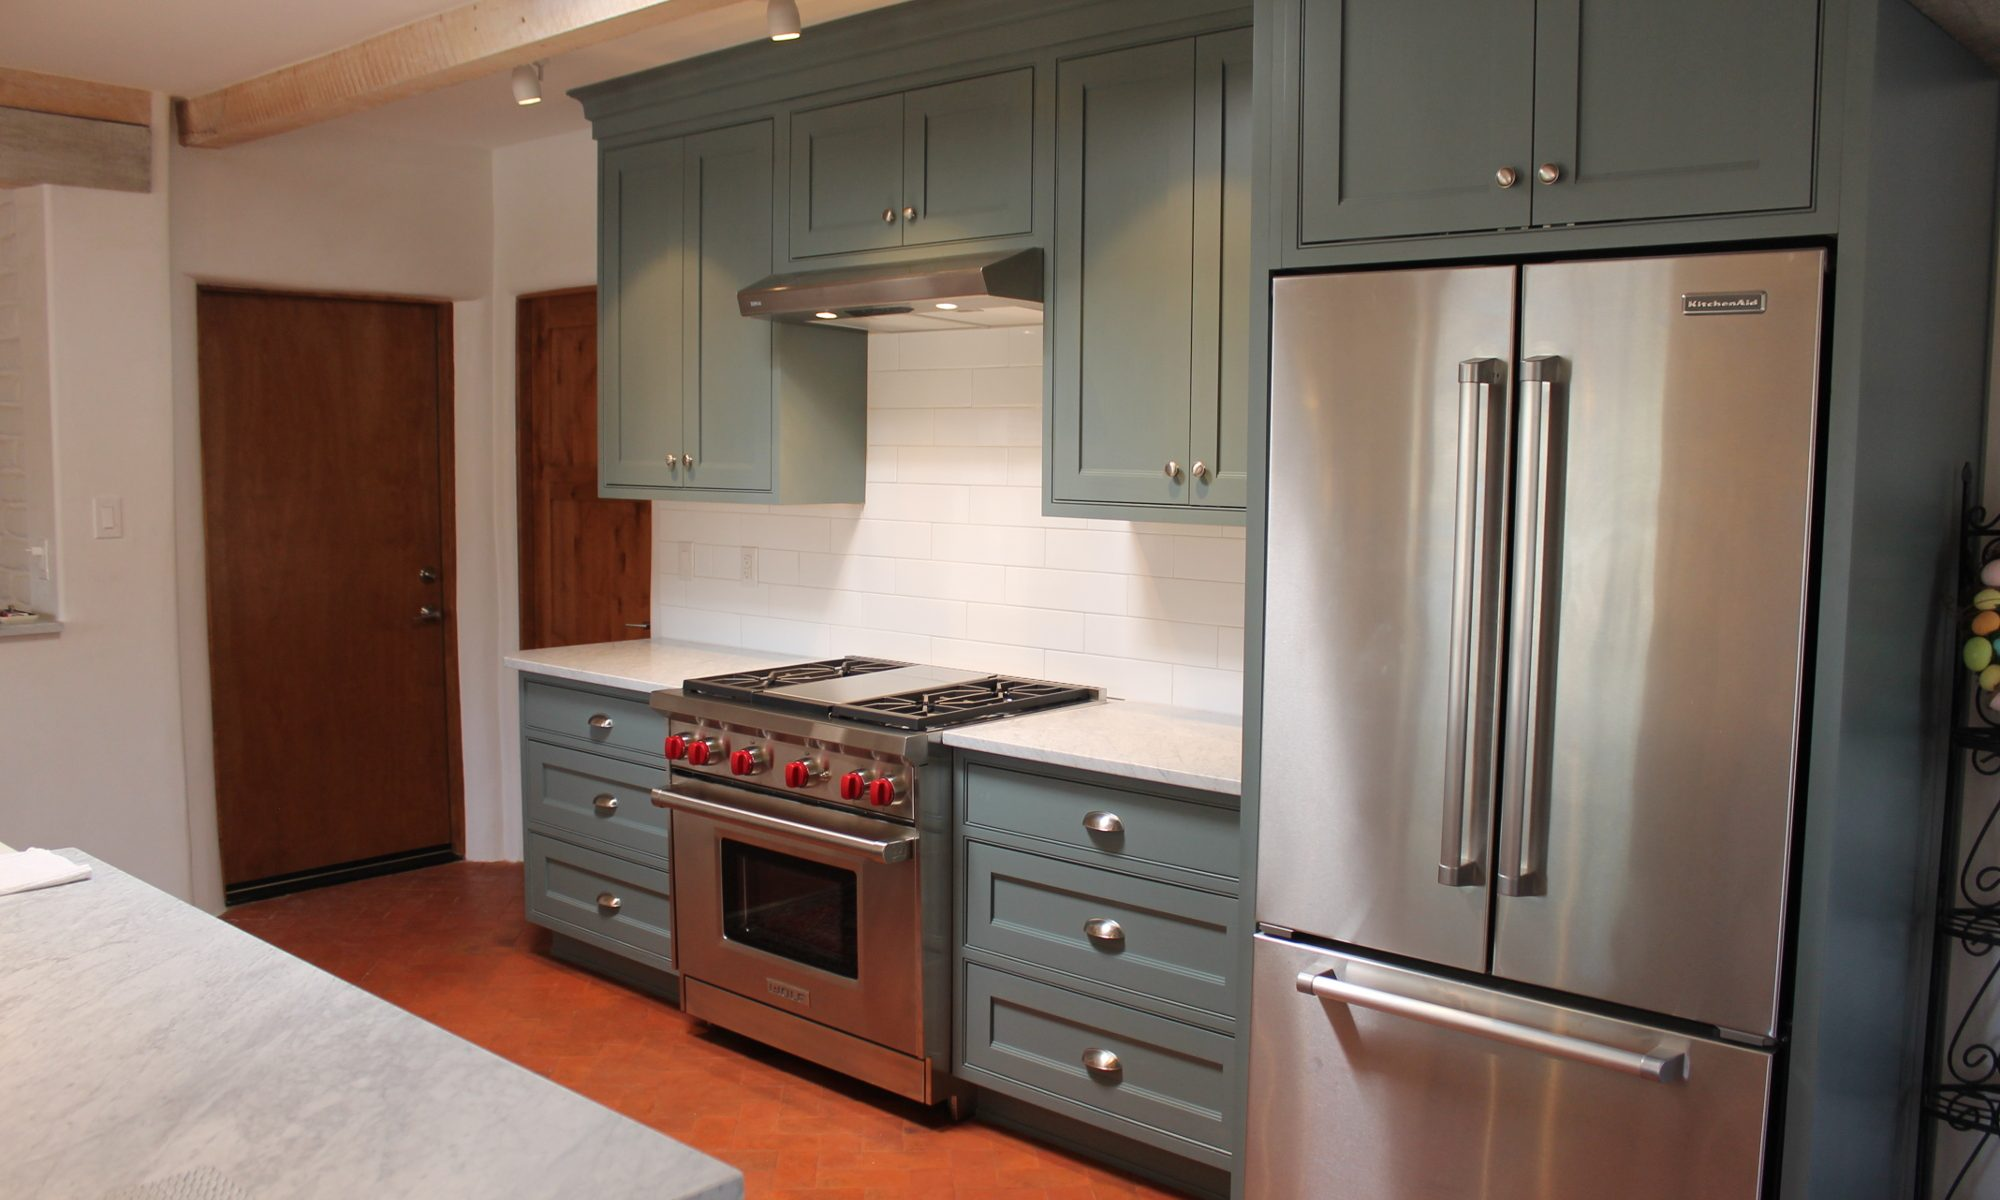 Blue kitchen with stainless steel appliances